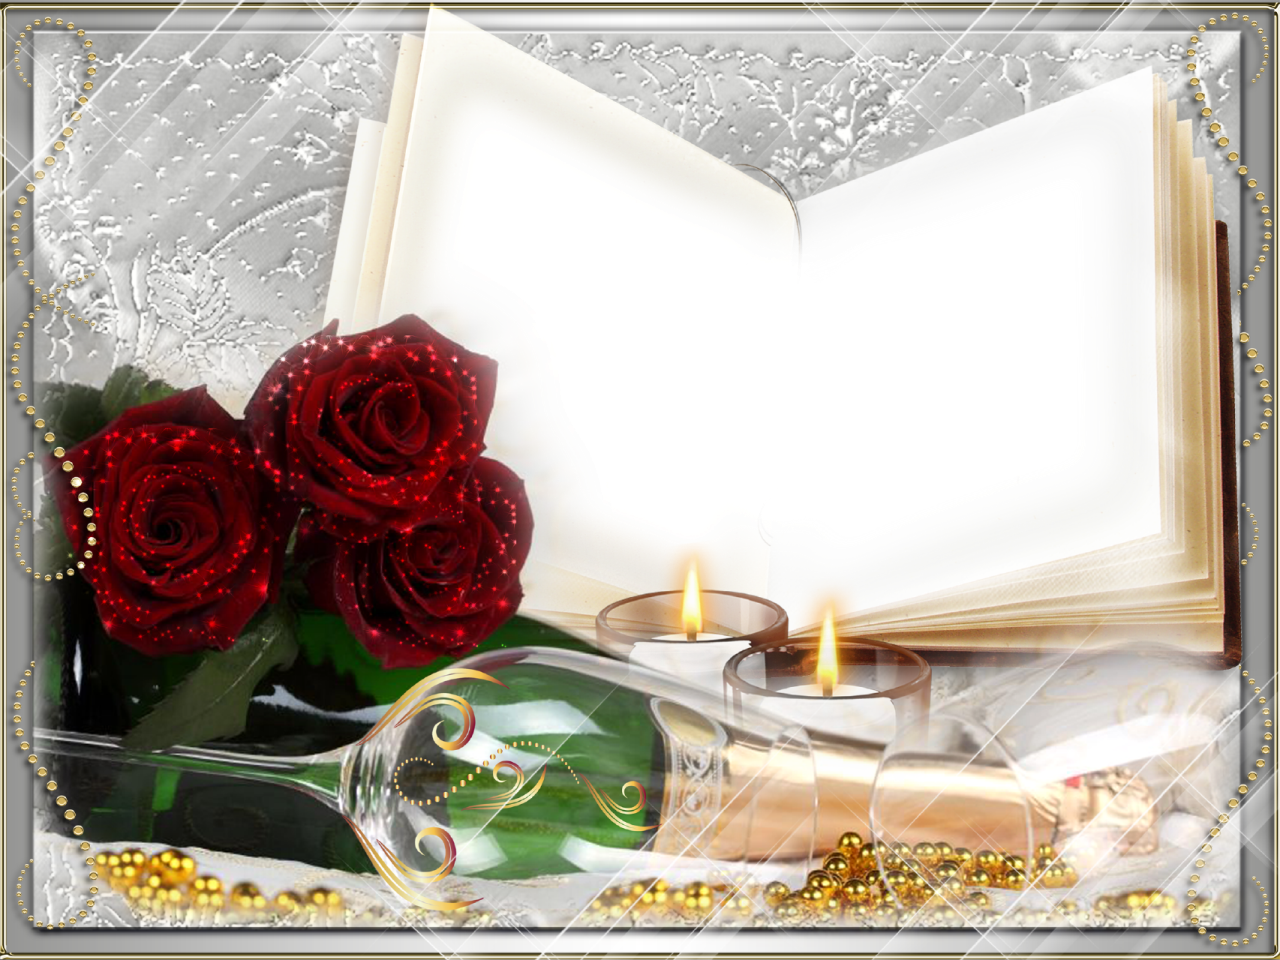 Romantic Backgrounds Png - Romantic love frame background png #27884 - Free Icons and PNG ...